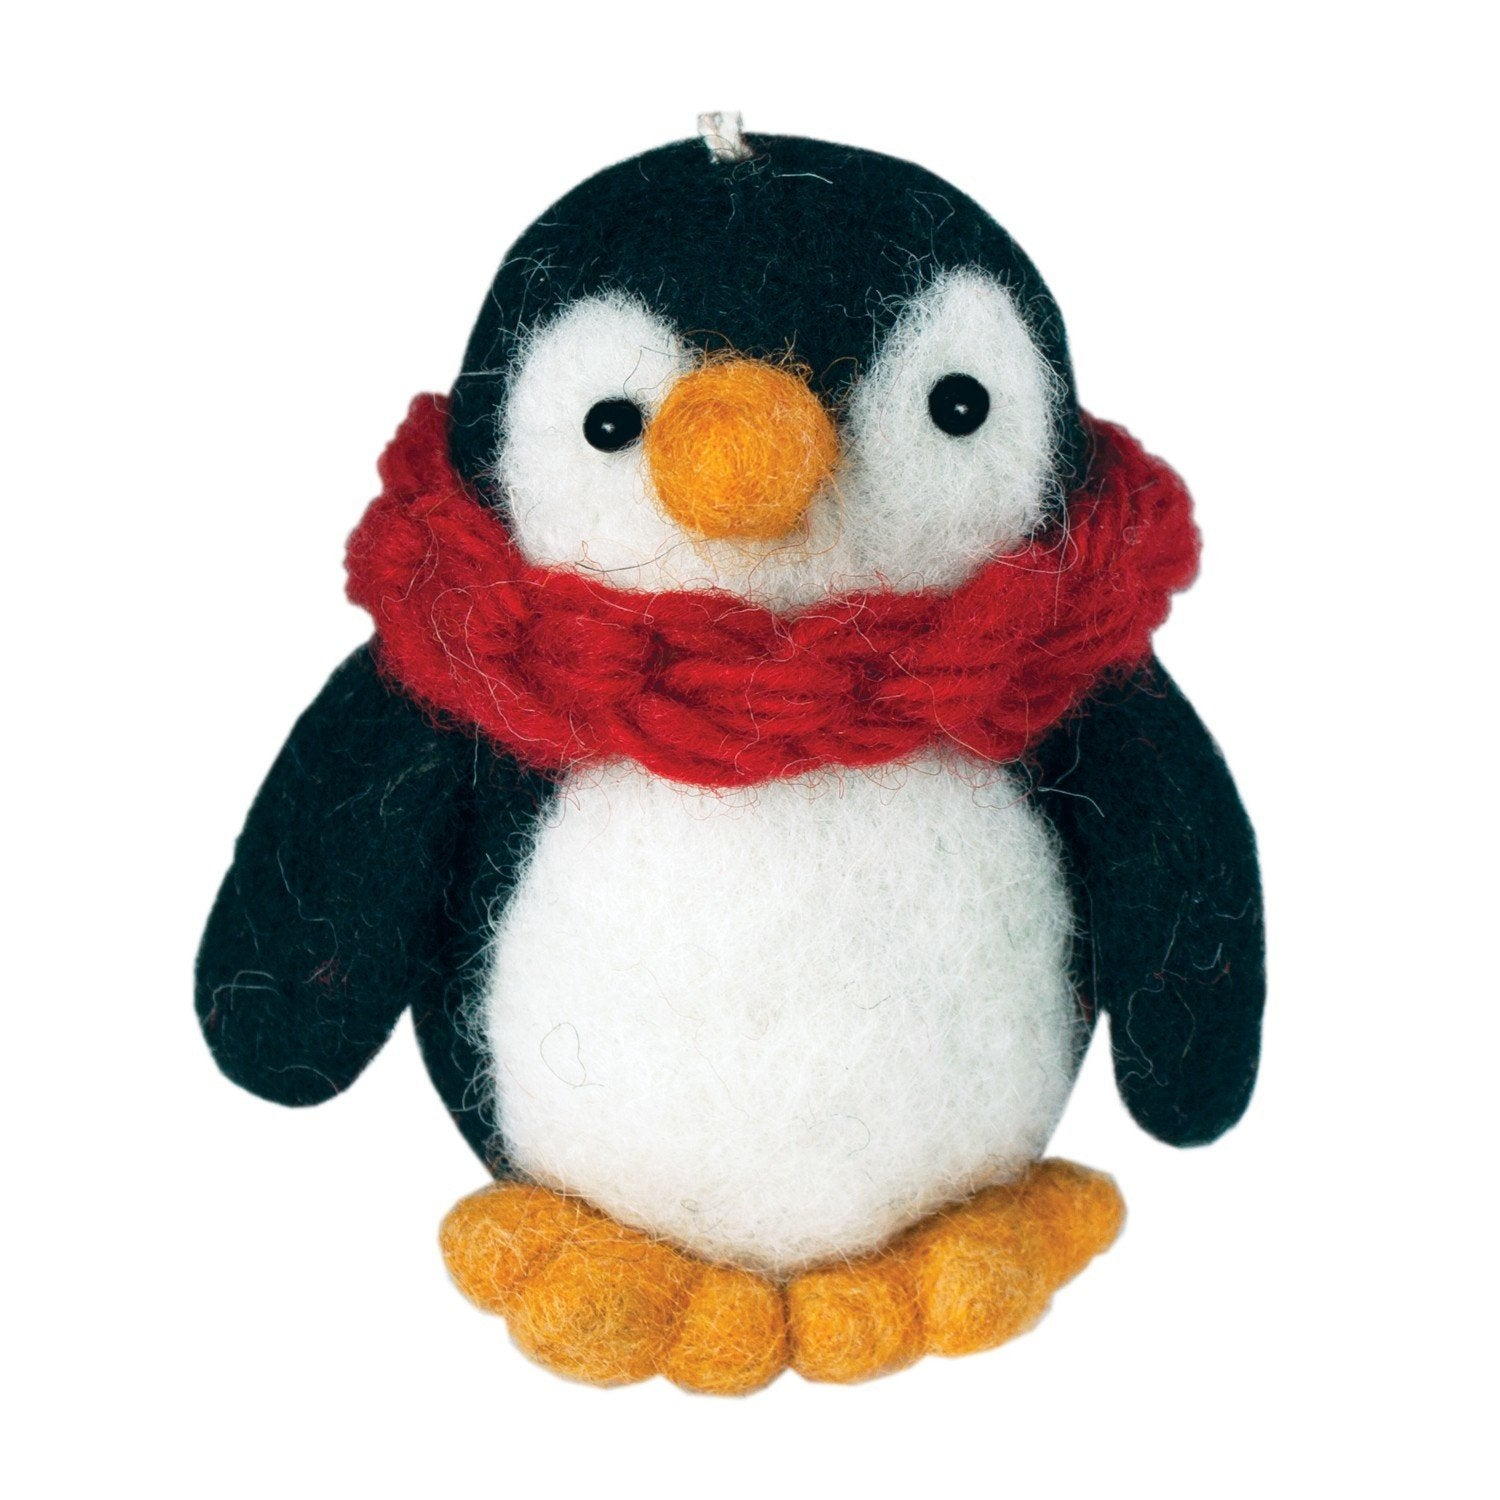 Felt Ornament - Penguin